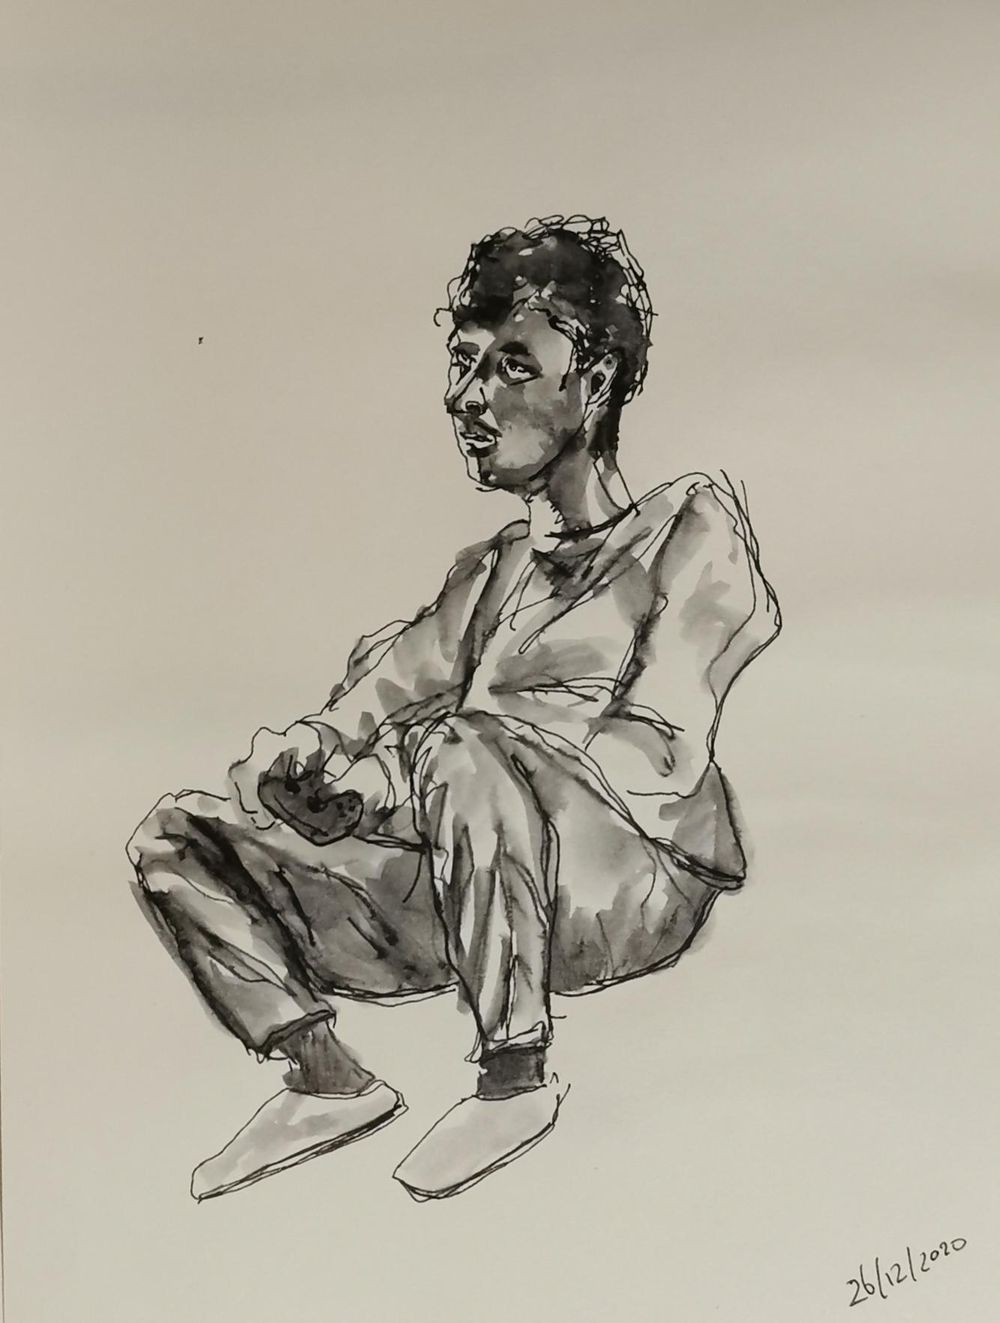 sketching people with watercolor and fountain pen - image 2 - student project